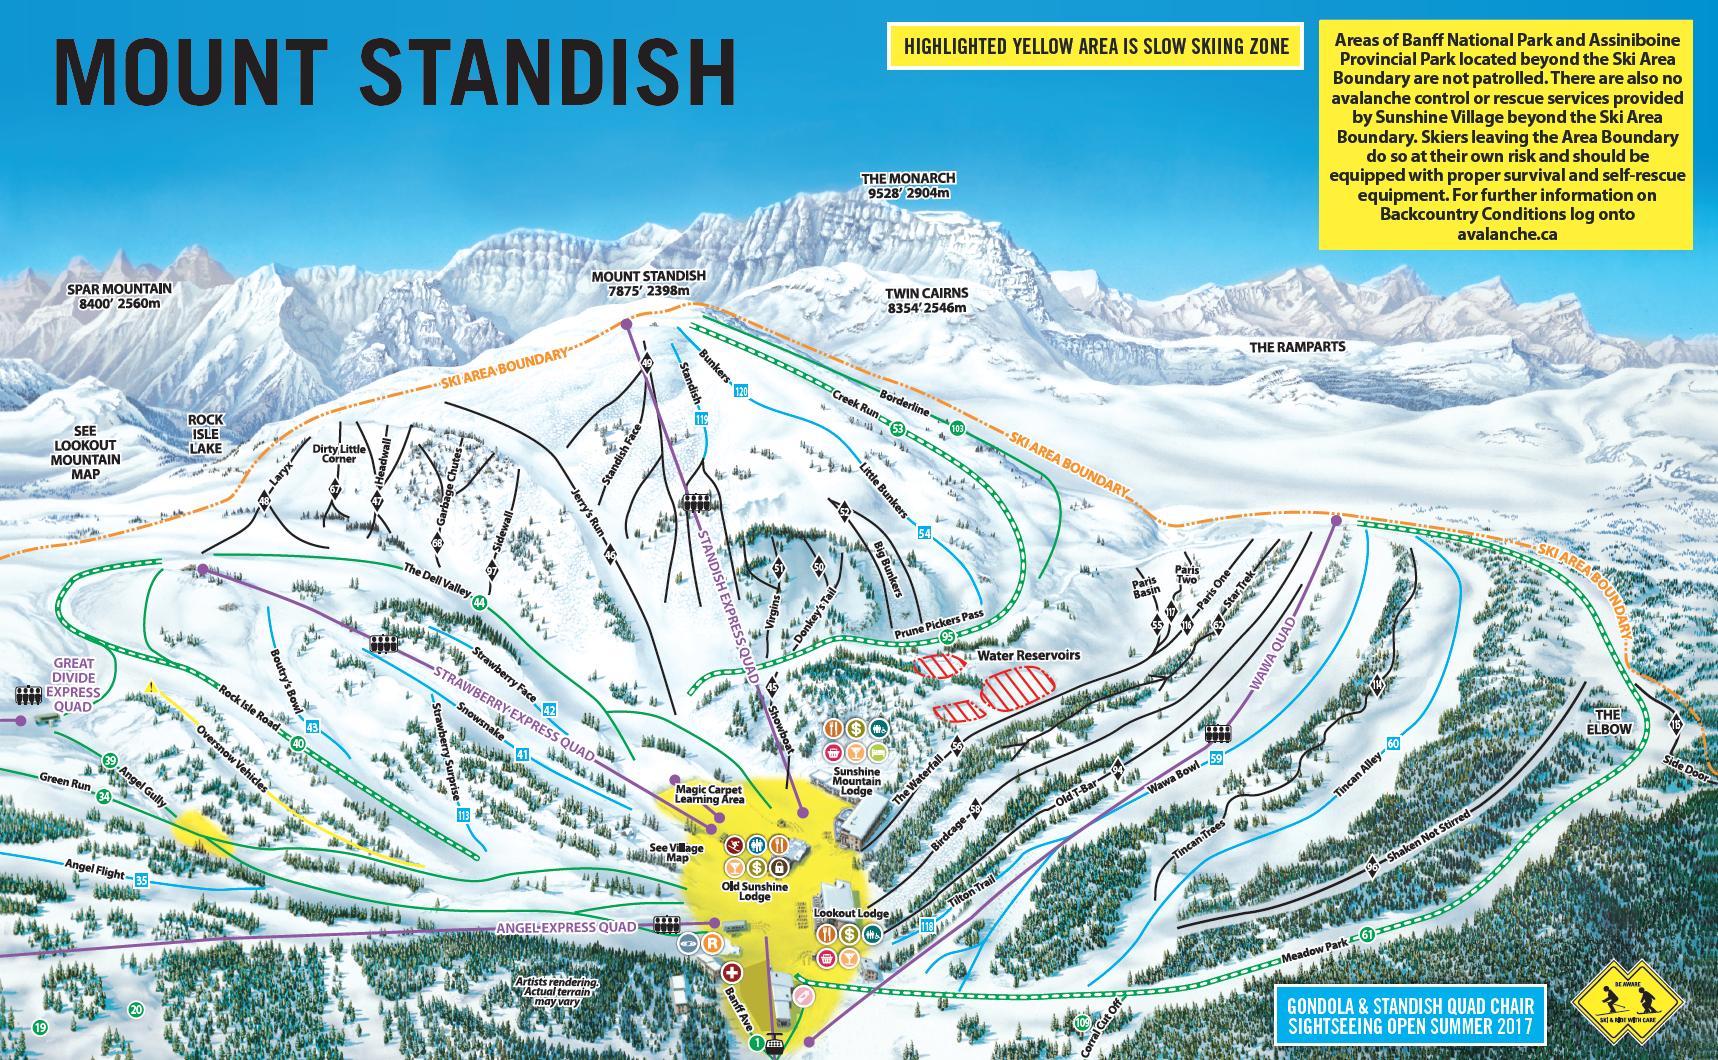 Sunshine Village Map Banff Sunshine (Formerly Sunshine Village)   SkiMap.org Sunshine Village Map